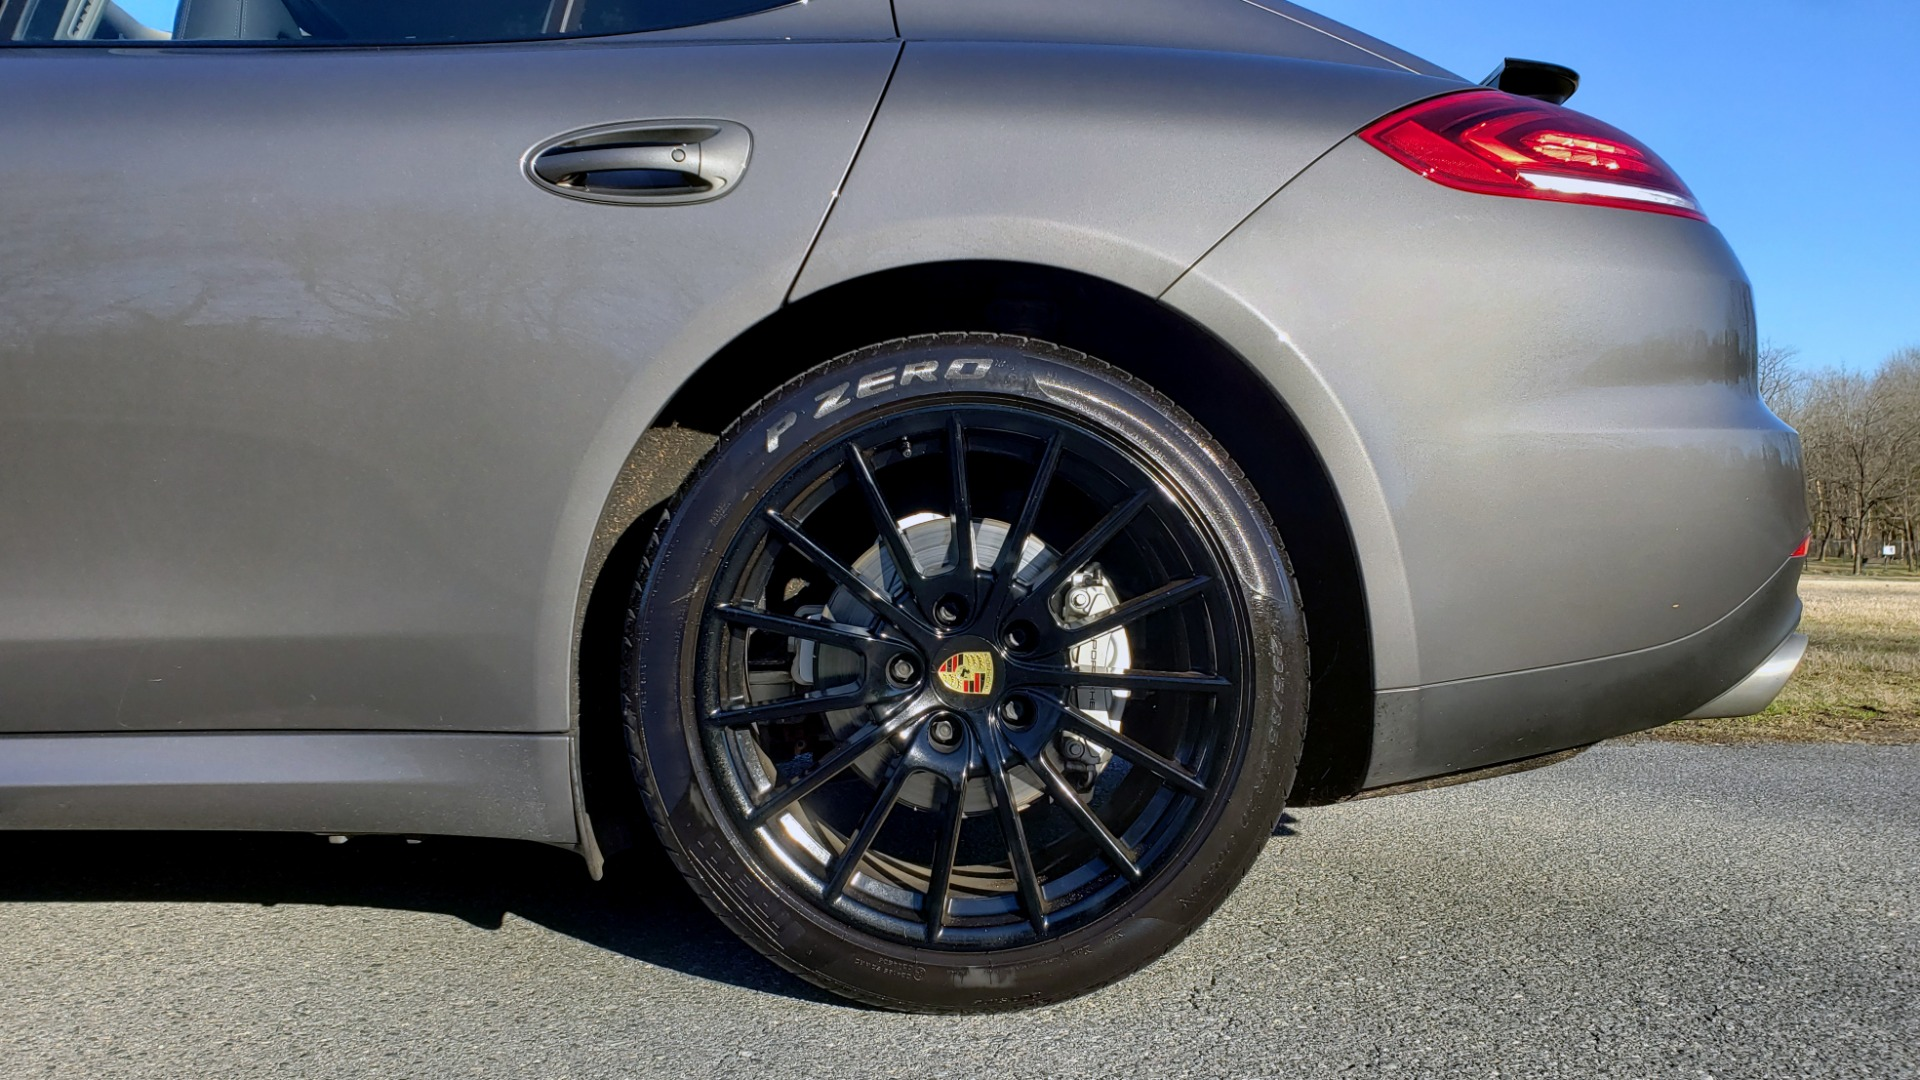 Used 2016 Porsche PANAMERA S / TURBO V6 / PDK / NAV / BOSE / SNRF / LDW / REARVIEW for sale Sold at Formula Imports in Charlotte NC 28227 96